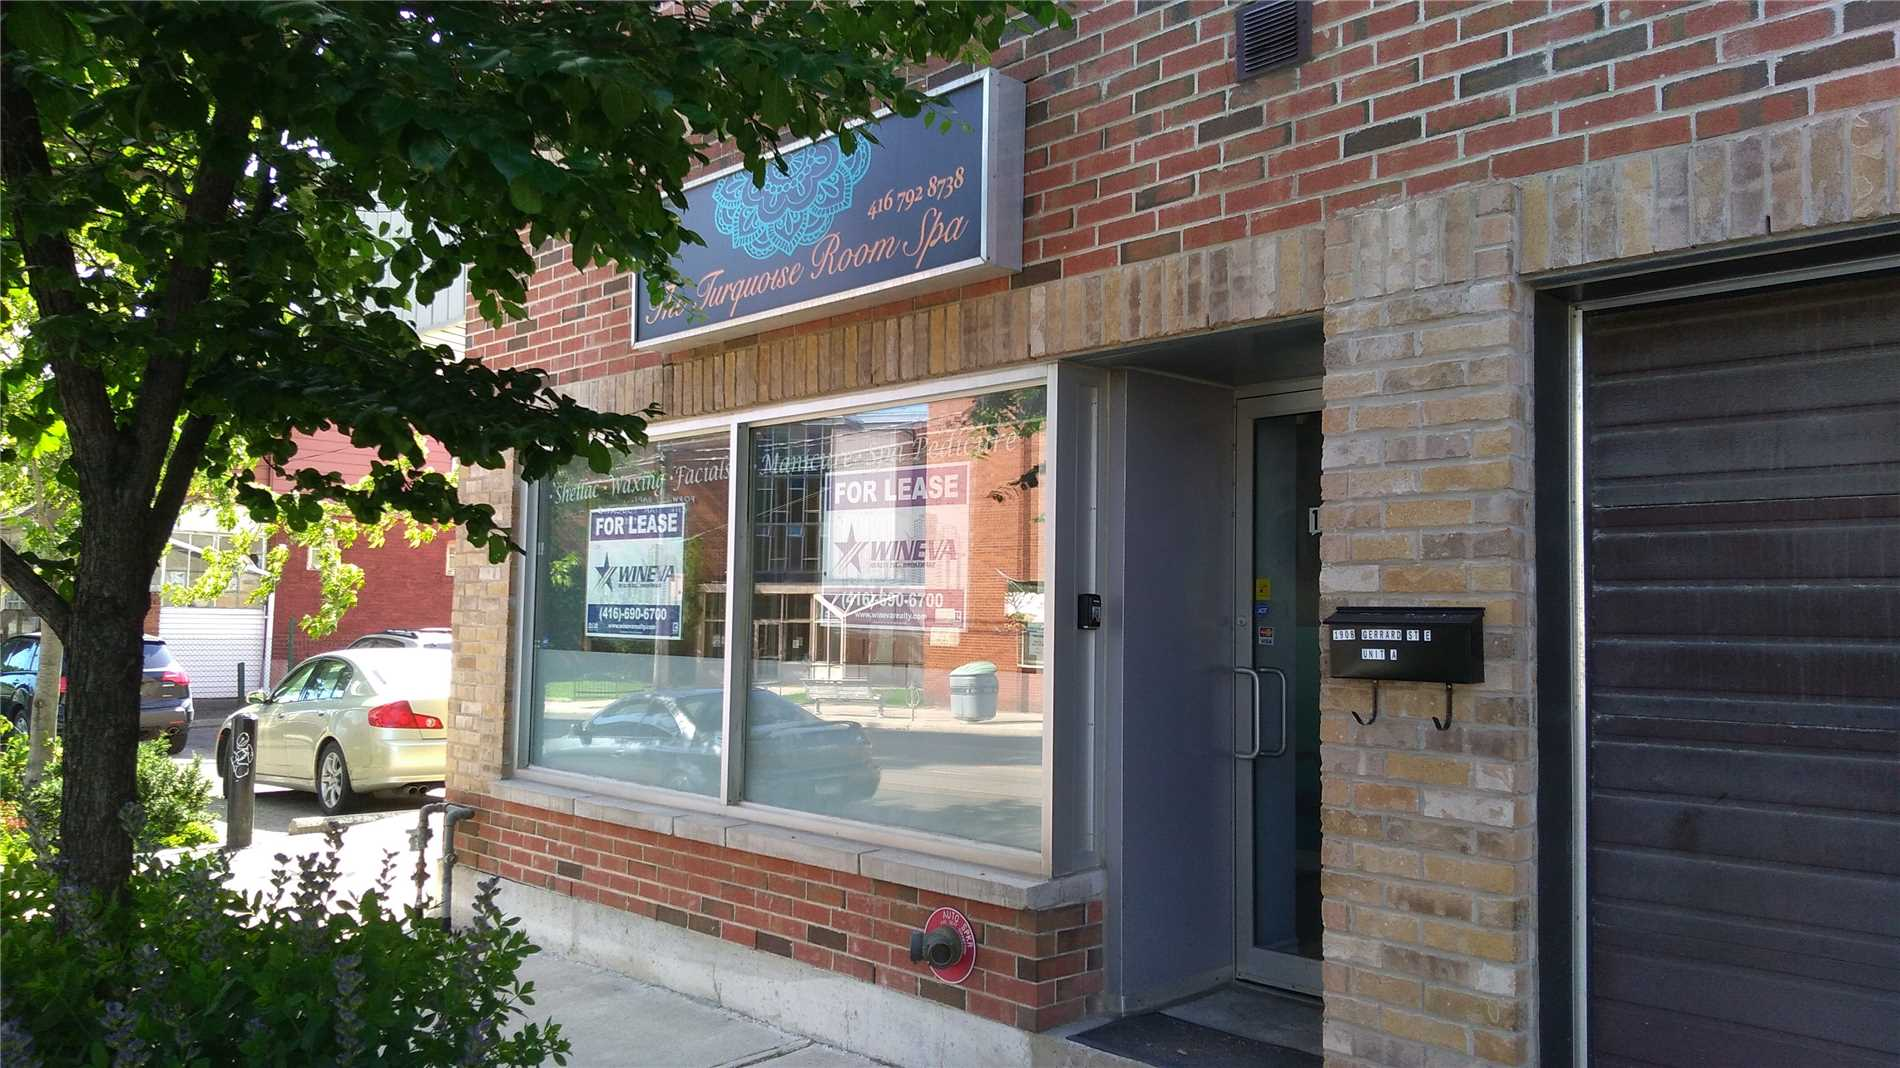 Prime Upper Beach Commercial Retail Space For Lease At Busy Woodbine/Gerrard Intersection. Lots Of Walk-By And Drive-By Traffic. Perfect For Any Business. Brand New Building From A To Z. Over 30 Apartments In Building With Plenty Of Potential Customers.